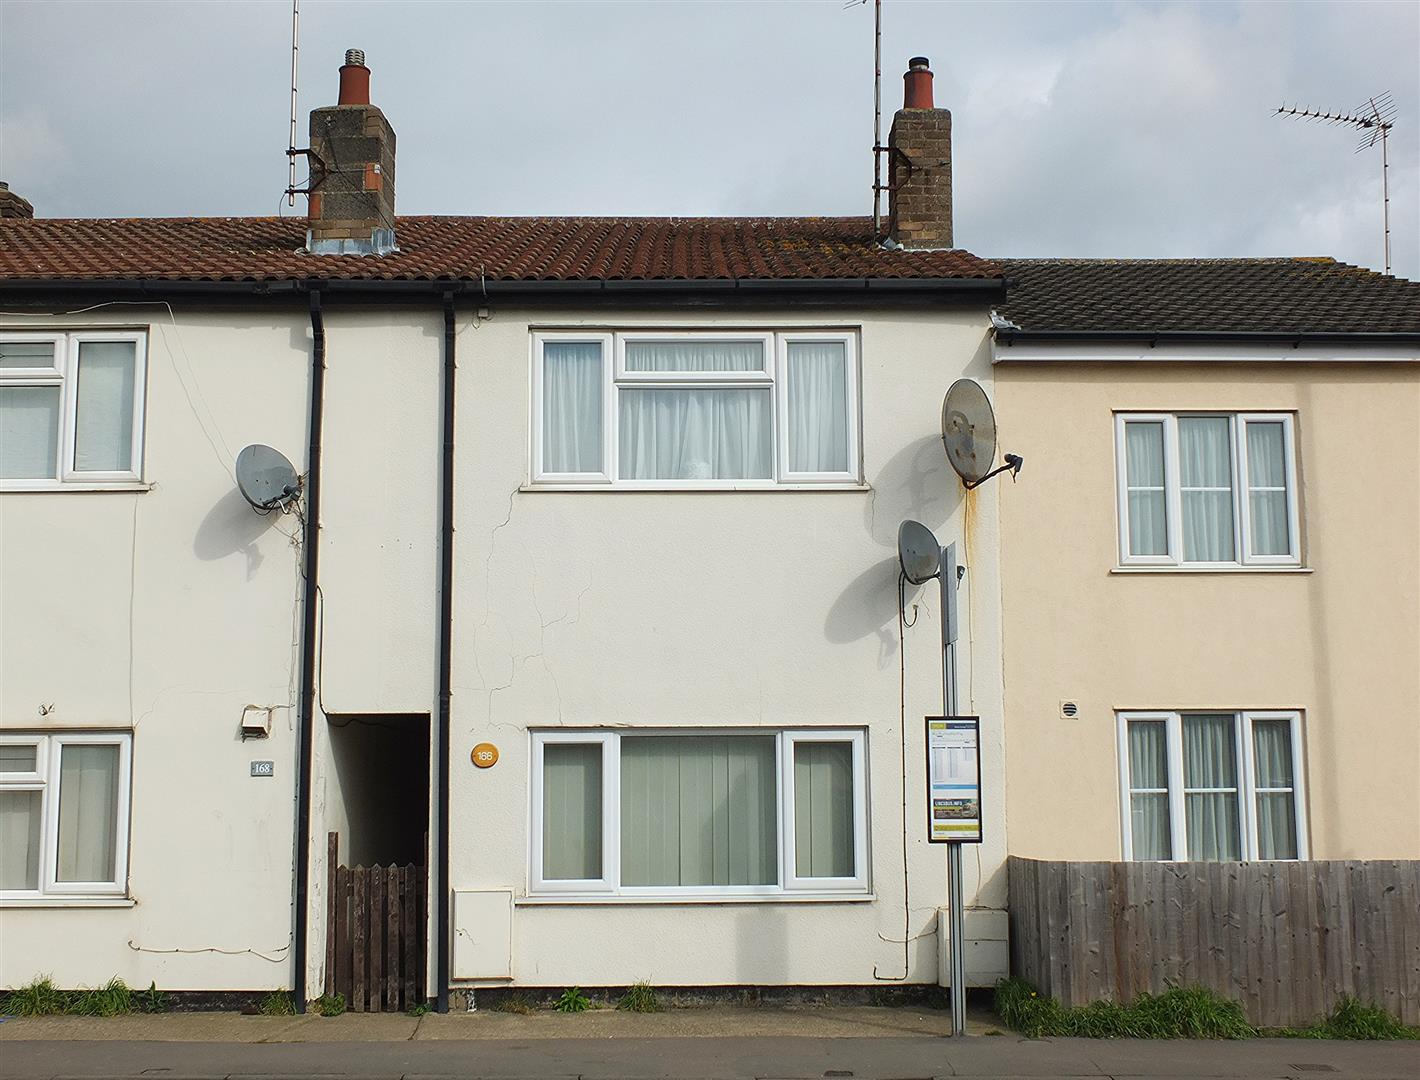 2 bed terraced house for sale in Sutton Bridge Spalding, PE12 9SF 0